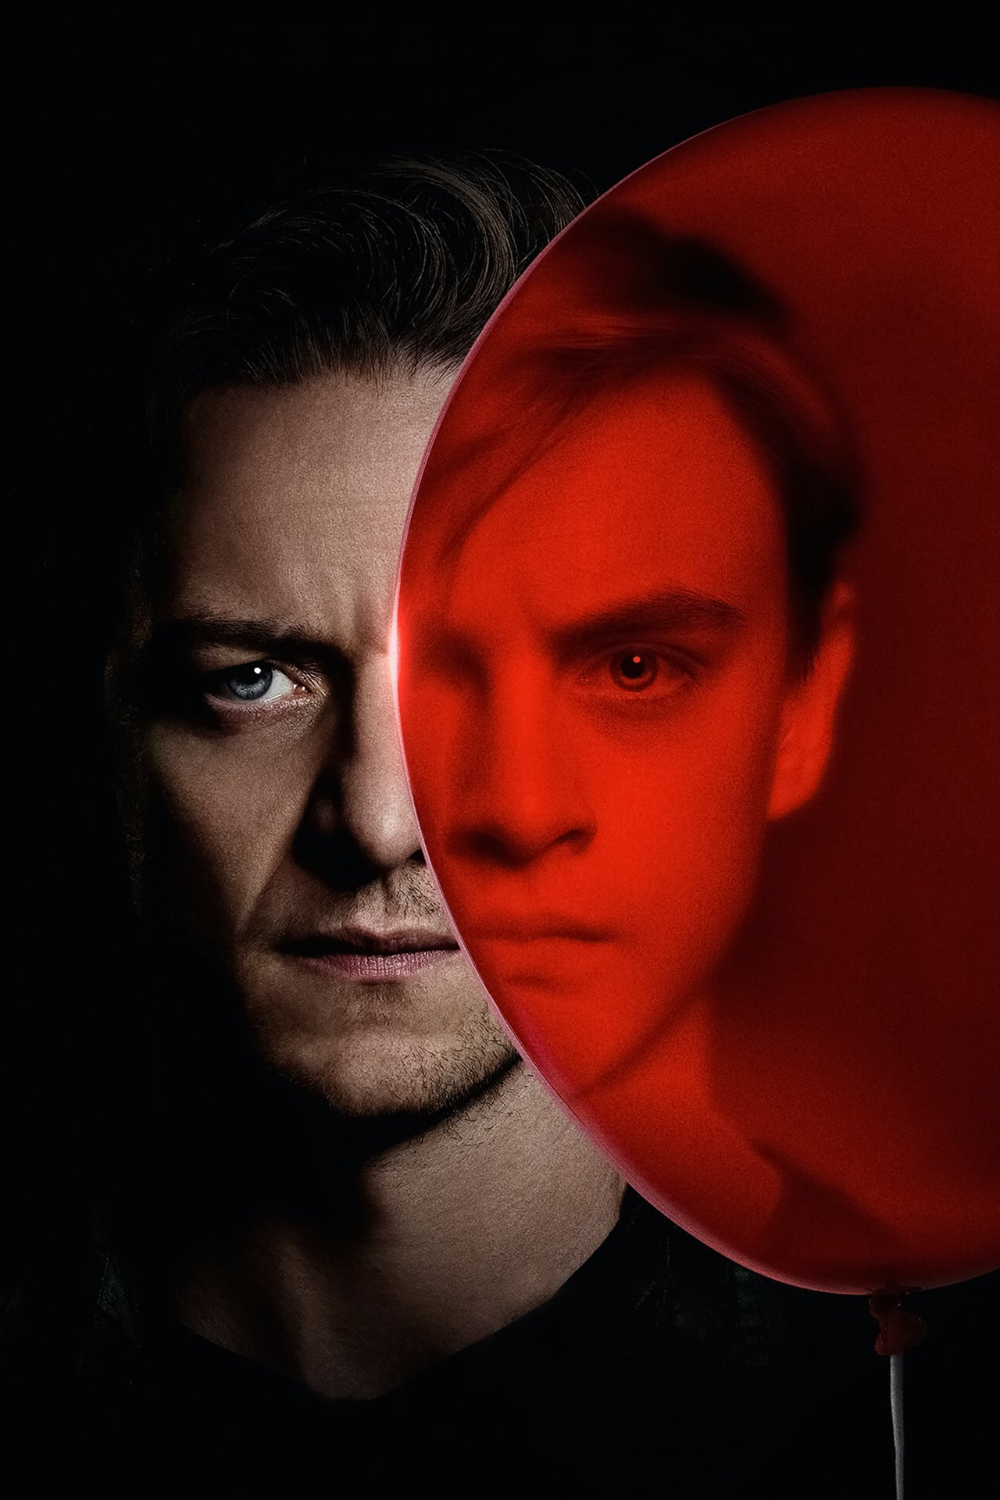 Watch FUll mOvie It Chapter Two [2019] Gratis - James McAvoy, Jessica Chastain, Bill Hader - 27 years after overcoming the malevolent supernatural entity Pennywise, the former members of the Losers' Club, who have grown up and moved away from Derry, are brought back together by a devastating ...It Chapter Two,It Chapter Two Cast,It Chapter Two Google Docs,It Chapter Two Showing Times,It Chapter Two Trailer,It Chapter Two Review,It Chapter Two Full Movie,It Chapter Two Movie Times,It Chapter Two